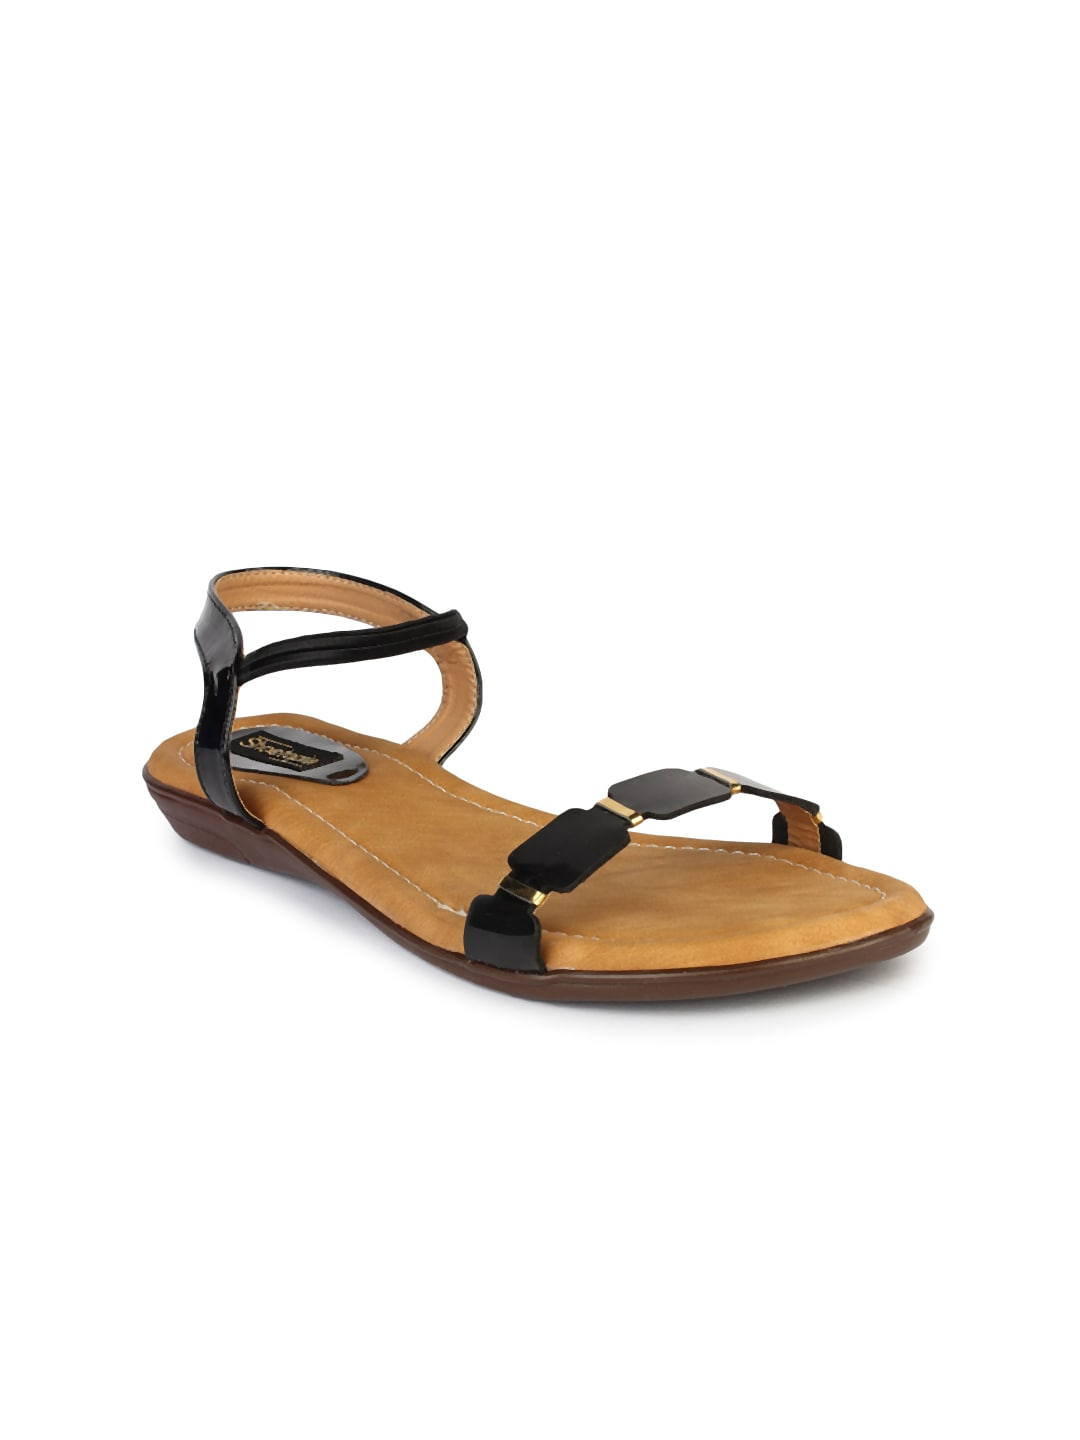 5ead7772bee Ladies Sandals - Buy Women Sandals Online in India - Myntra